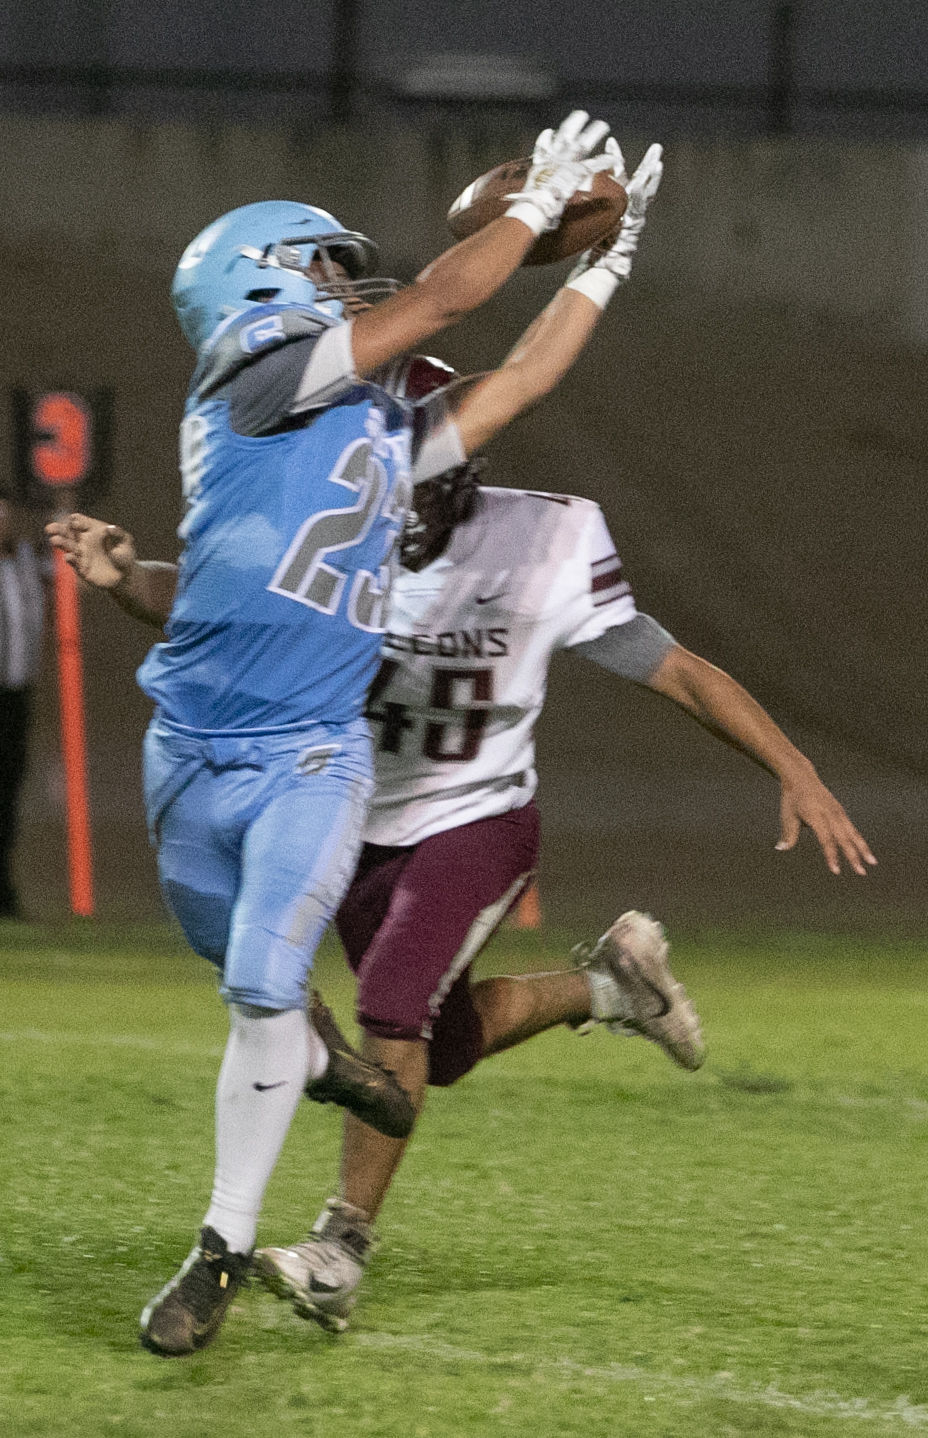 East gives coach first win in dramatic fashion | Sports